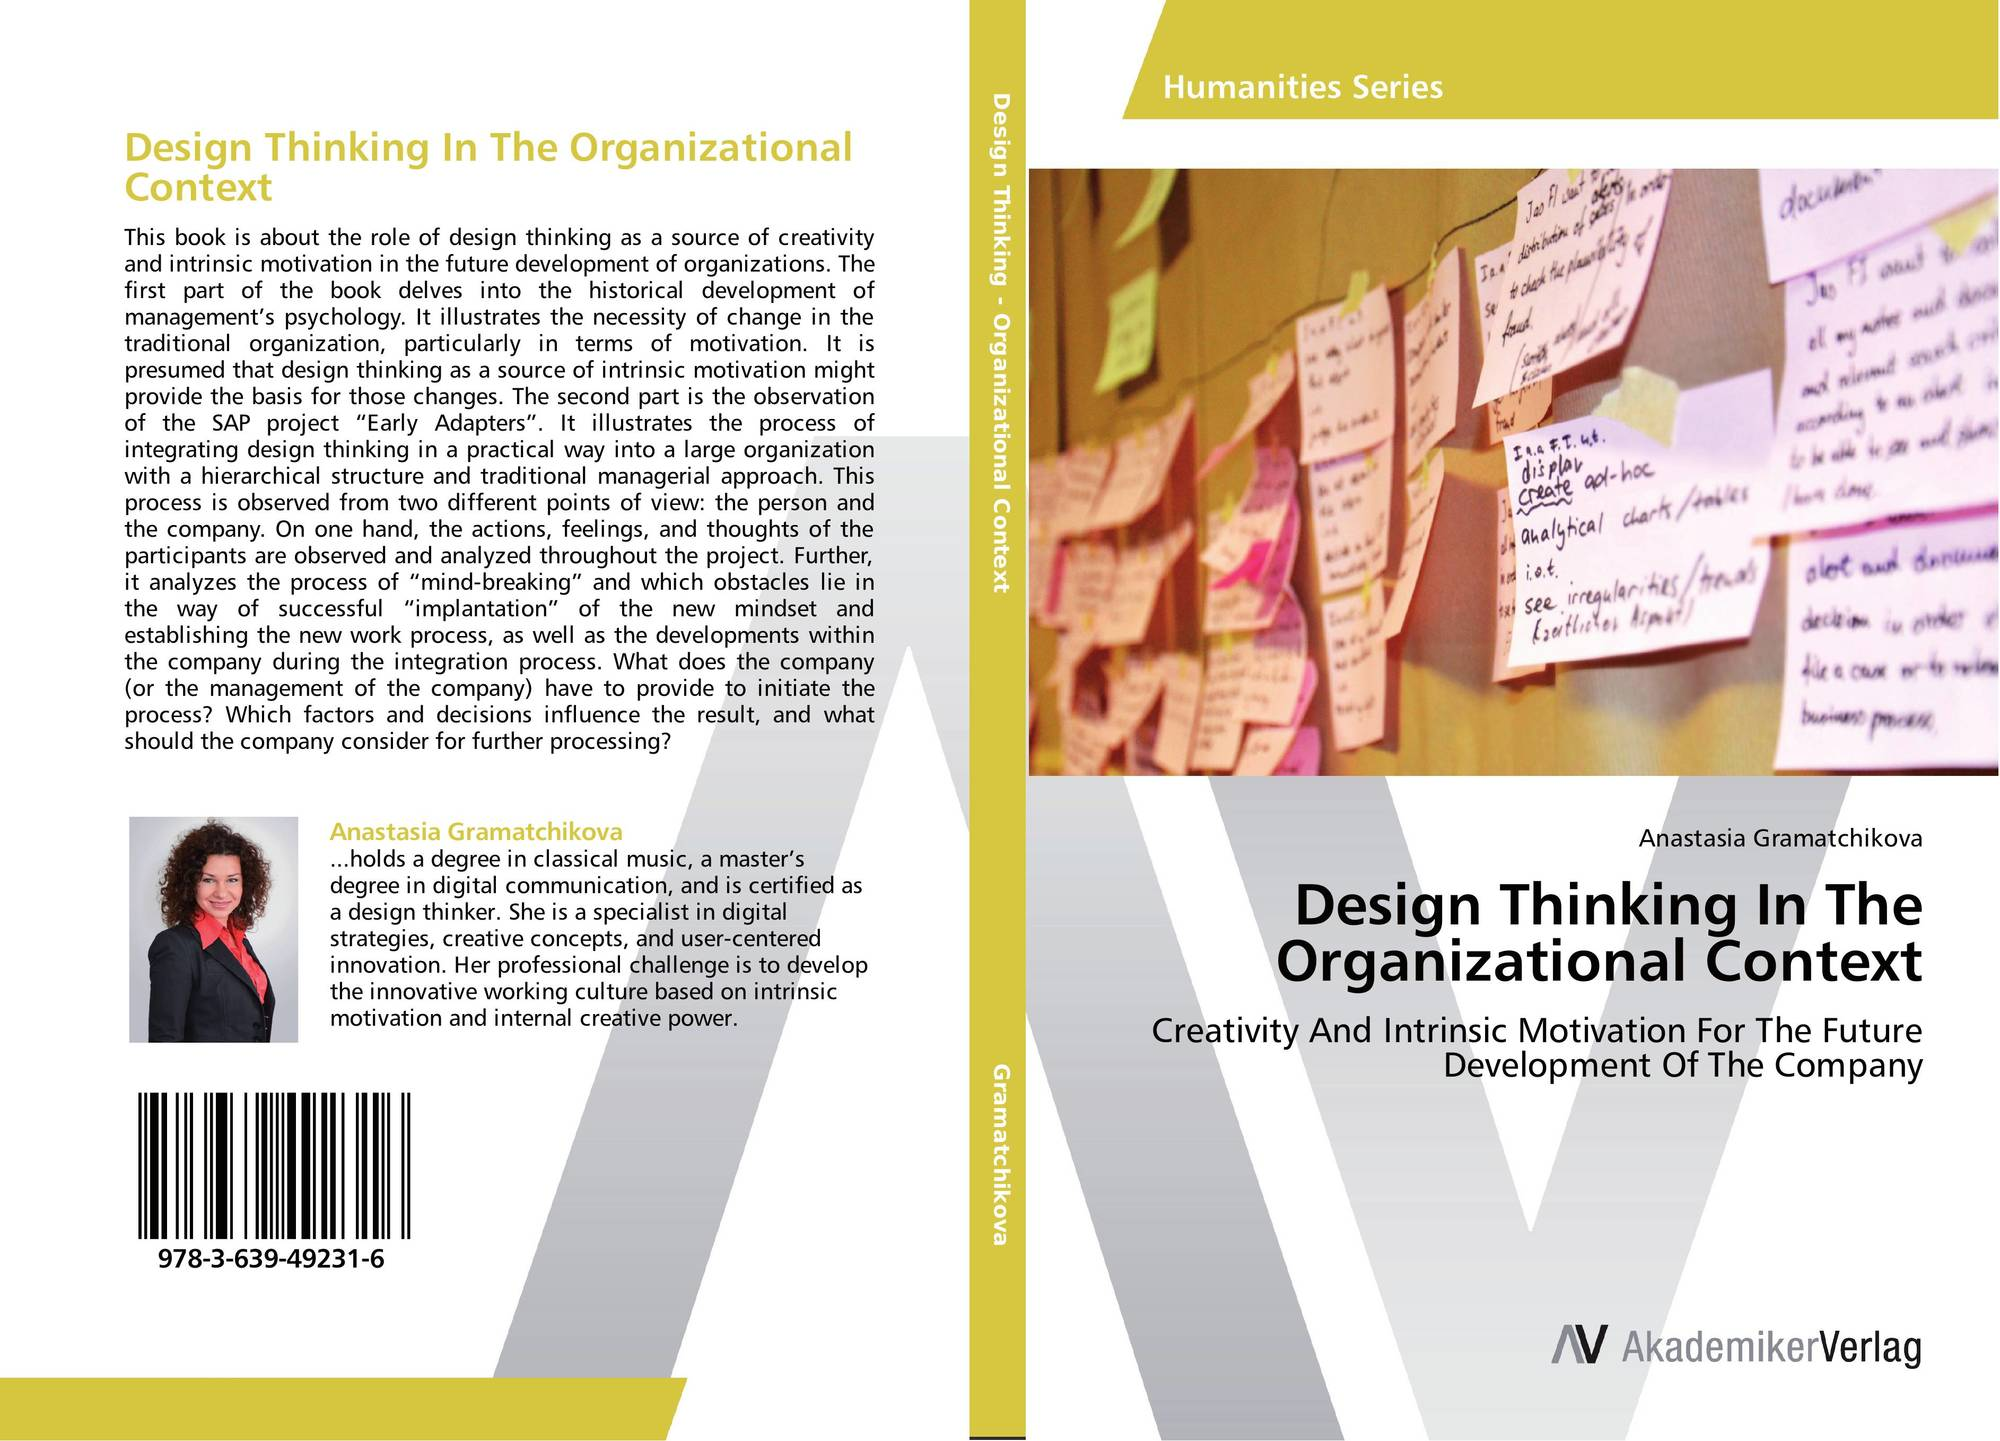 Design Thinking In The Organizational Context, 978-3-639-49231-6